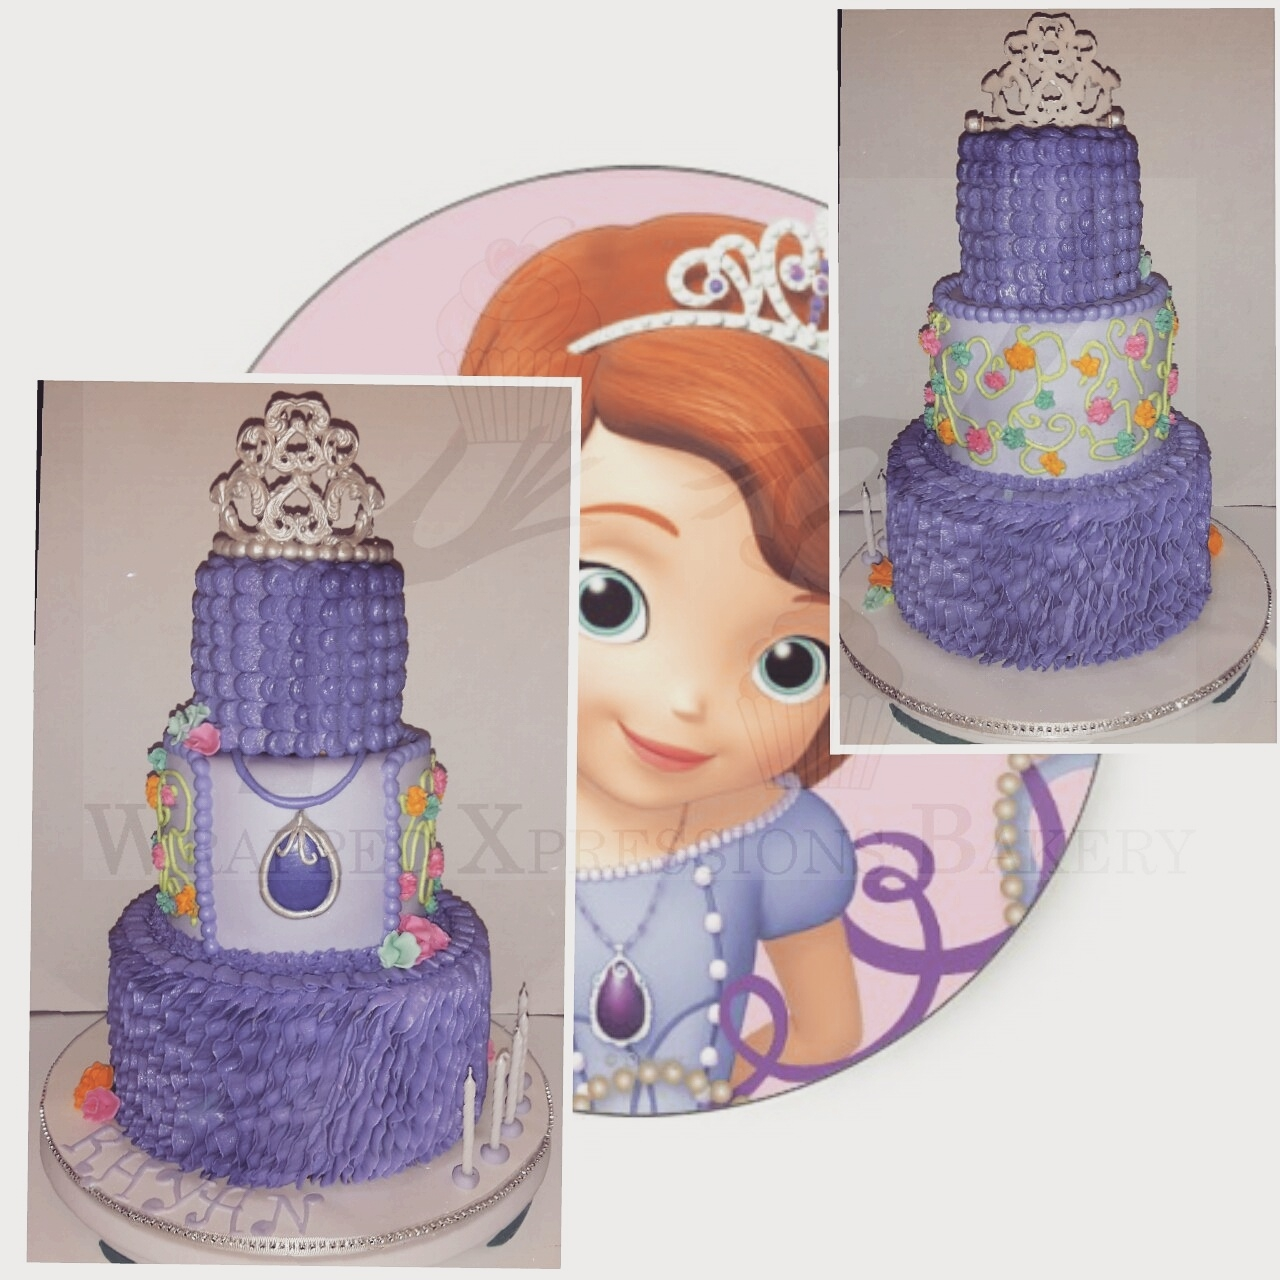 3 Tier Sofia The First Birthday Cake 3 tier Sofia the First Birthday cake